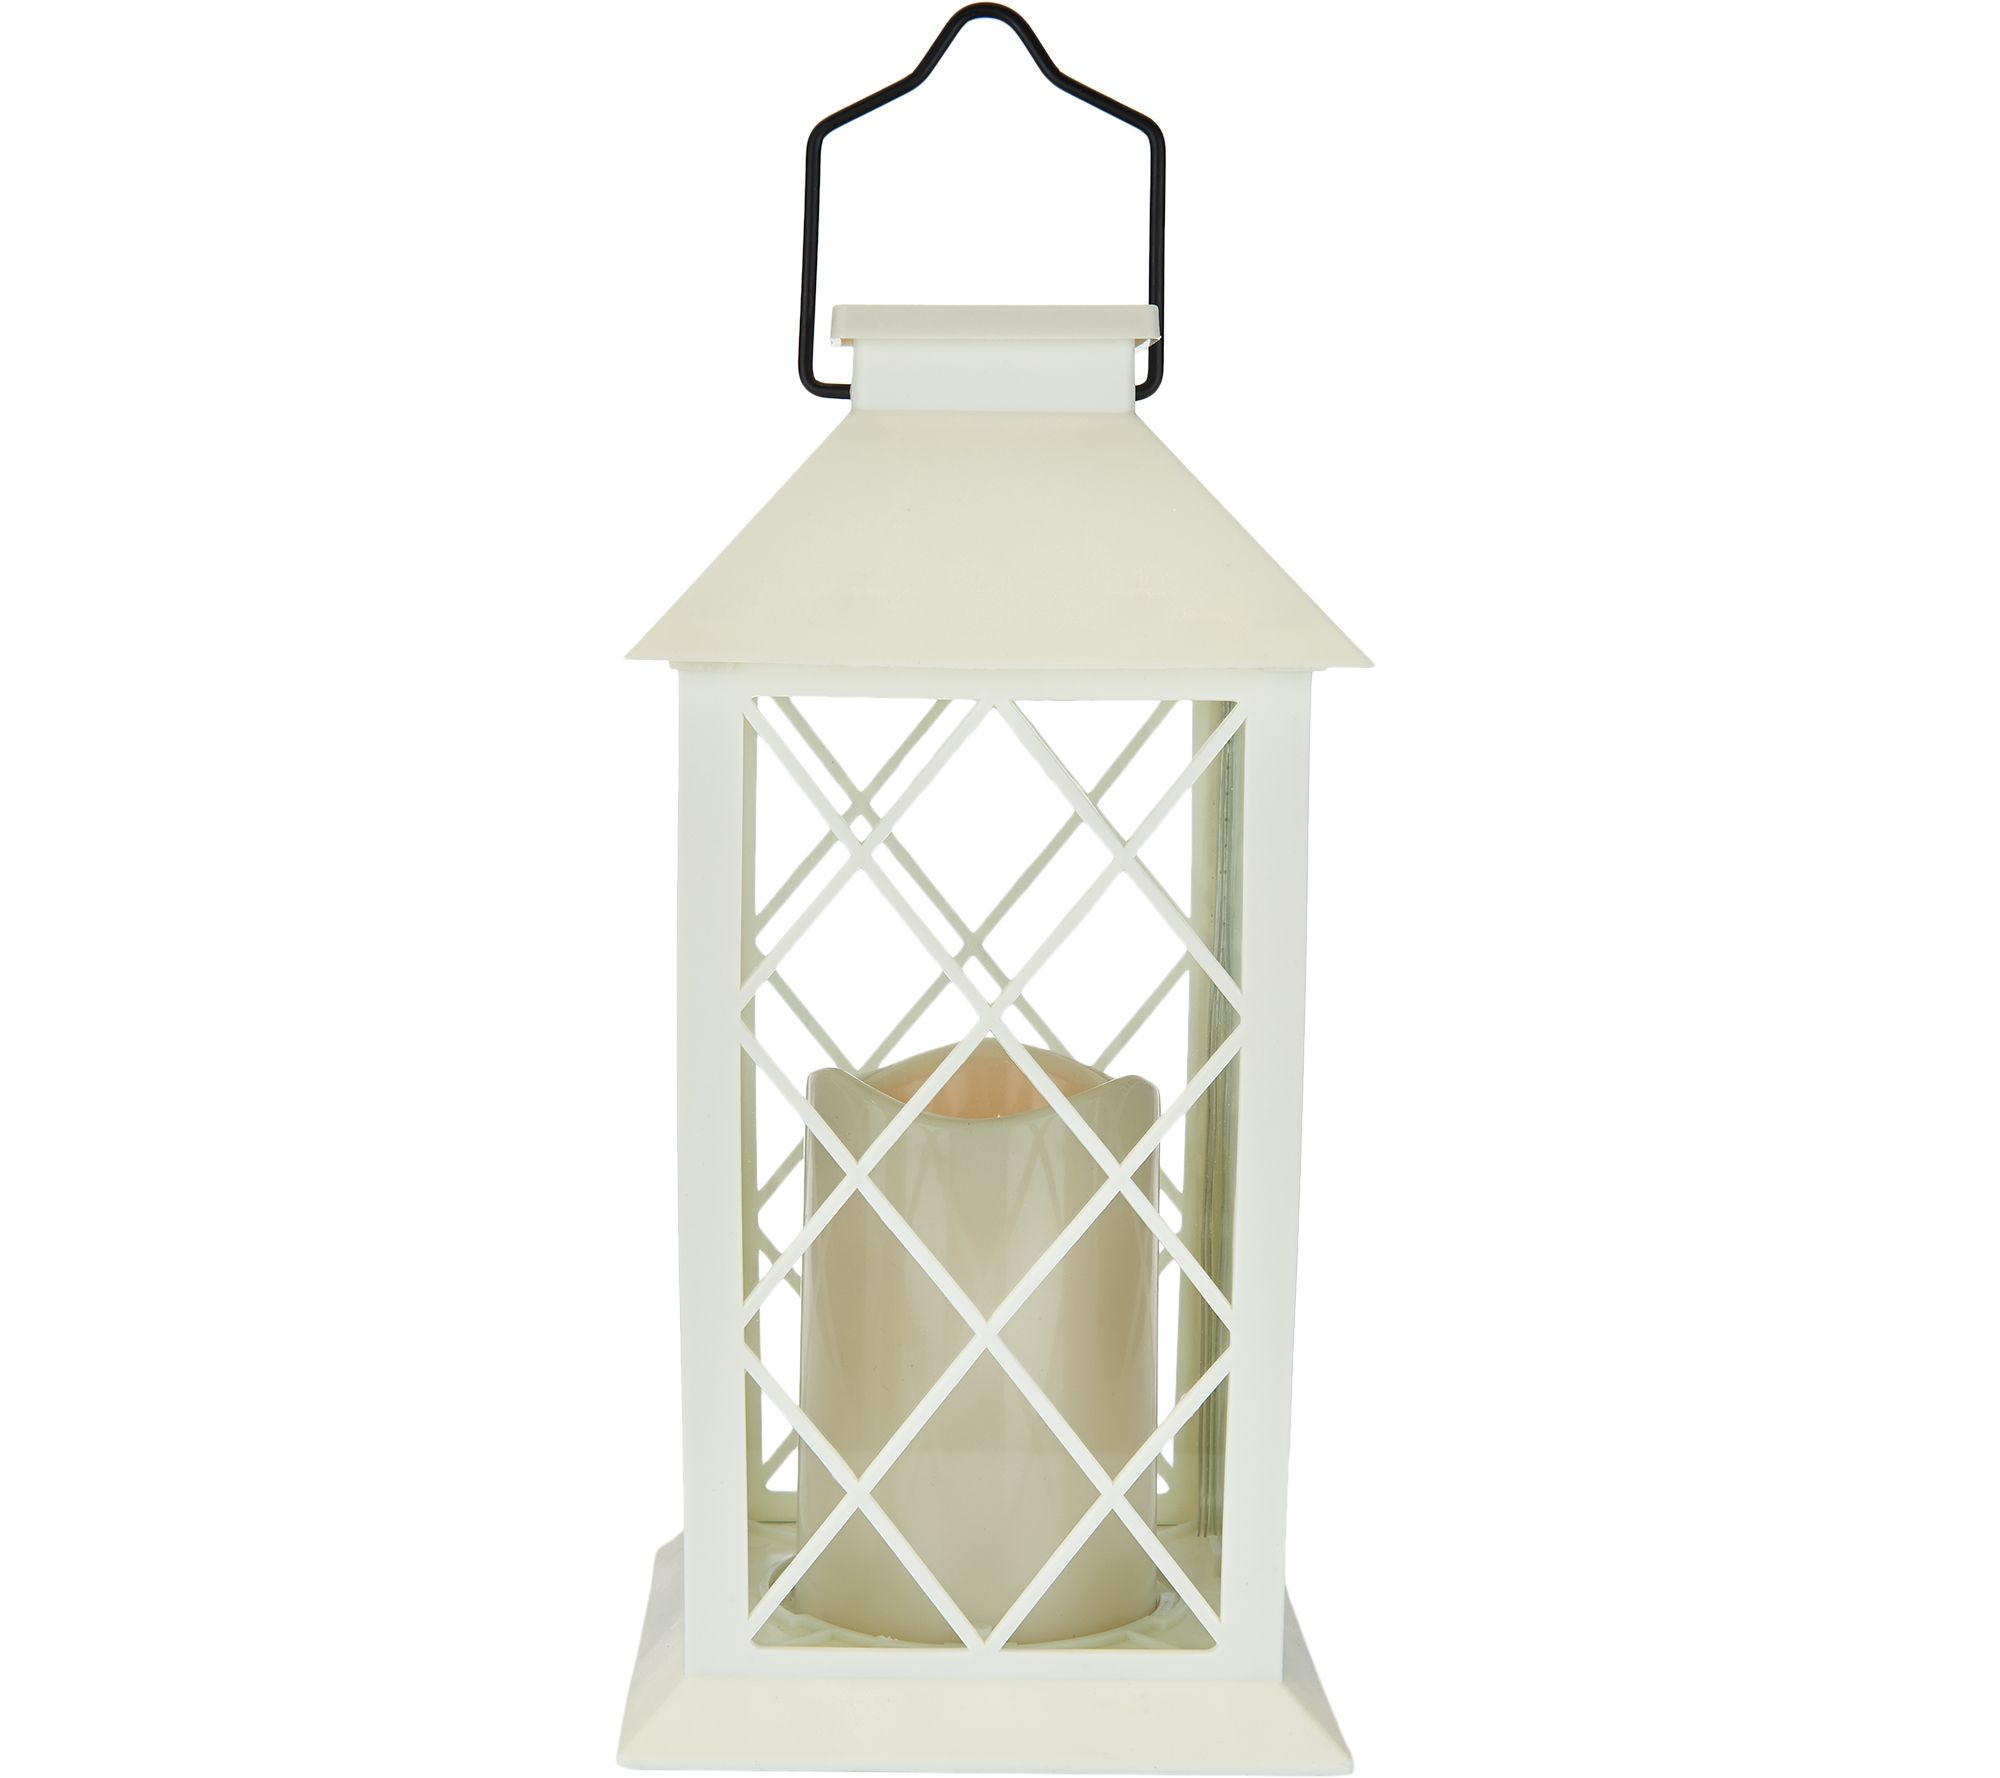 Qvc Outdoor Wall Lights: Barbara King Indoor/Outdoor Solar Lantern With Flameless